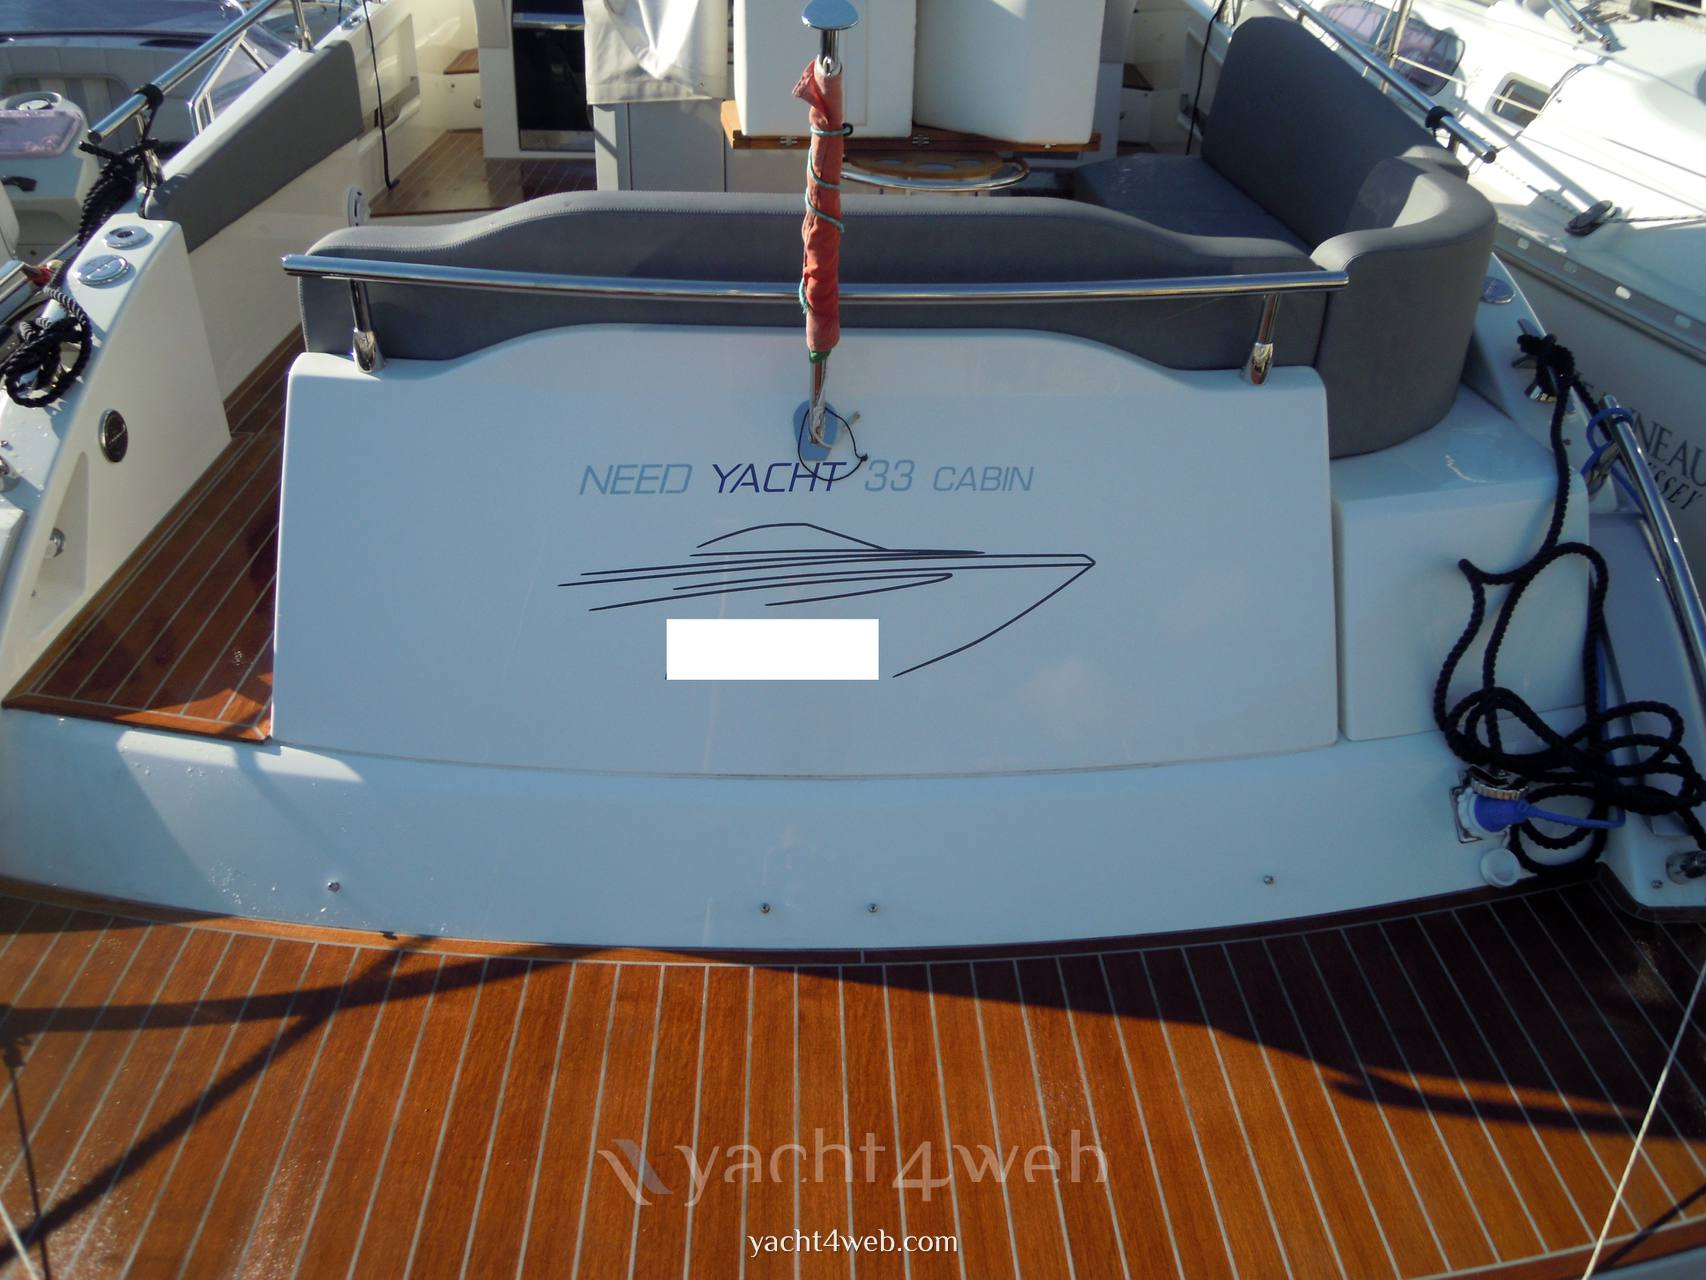 NEED YACHT 33 cabin Express cruiser